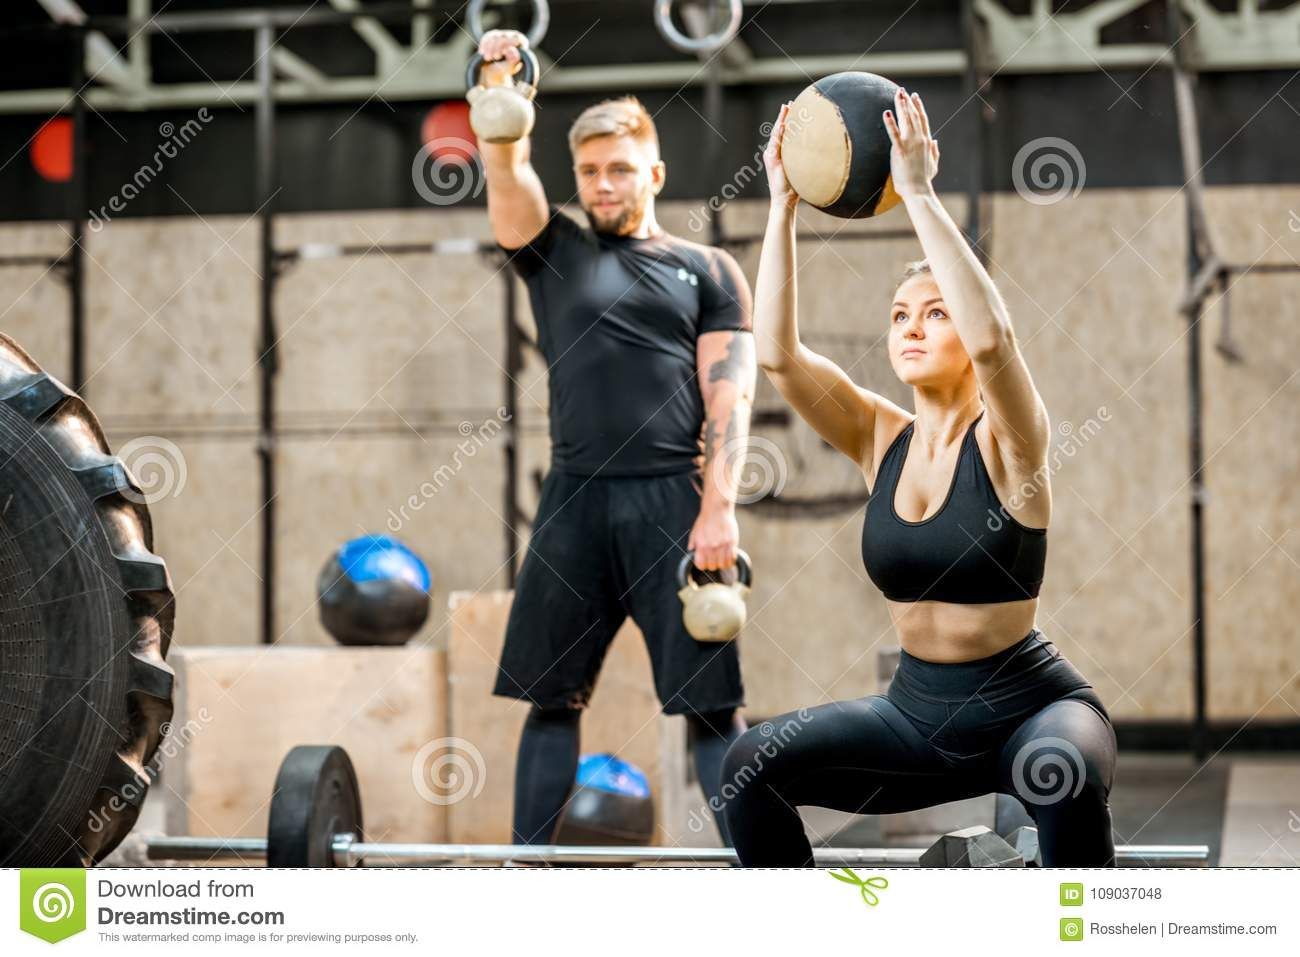 Crossfit Stock Photos Royalty Free Images 24995 Stock